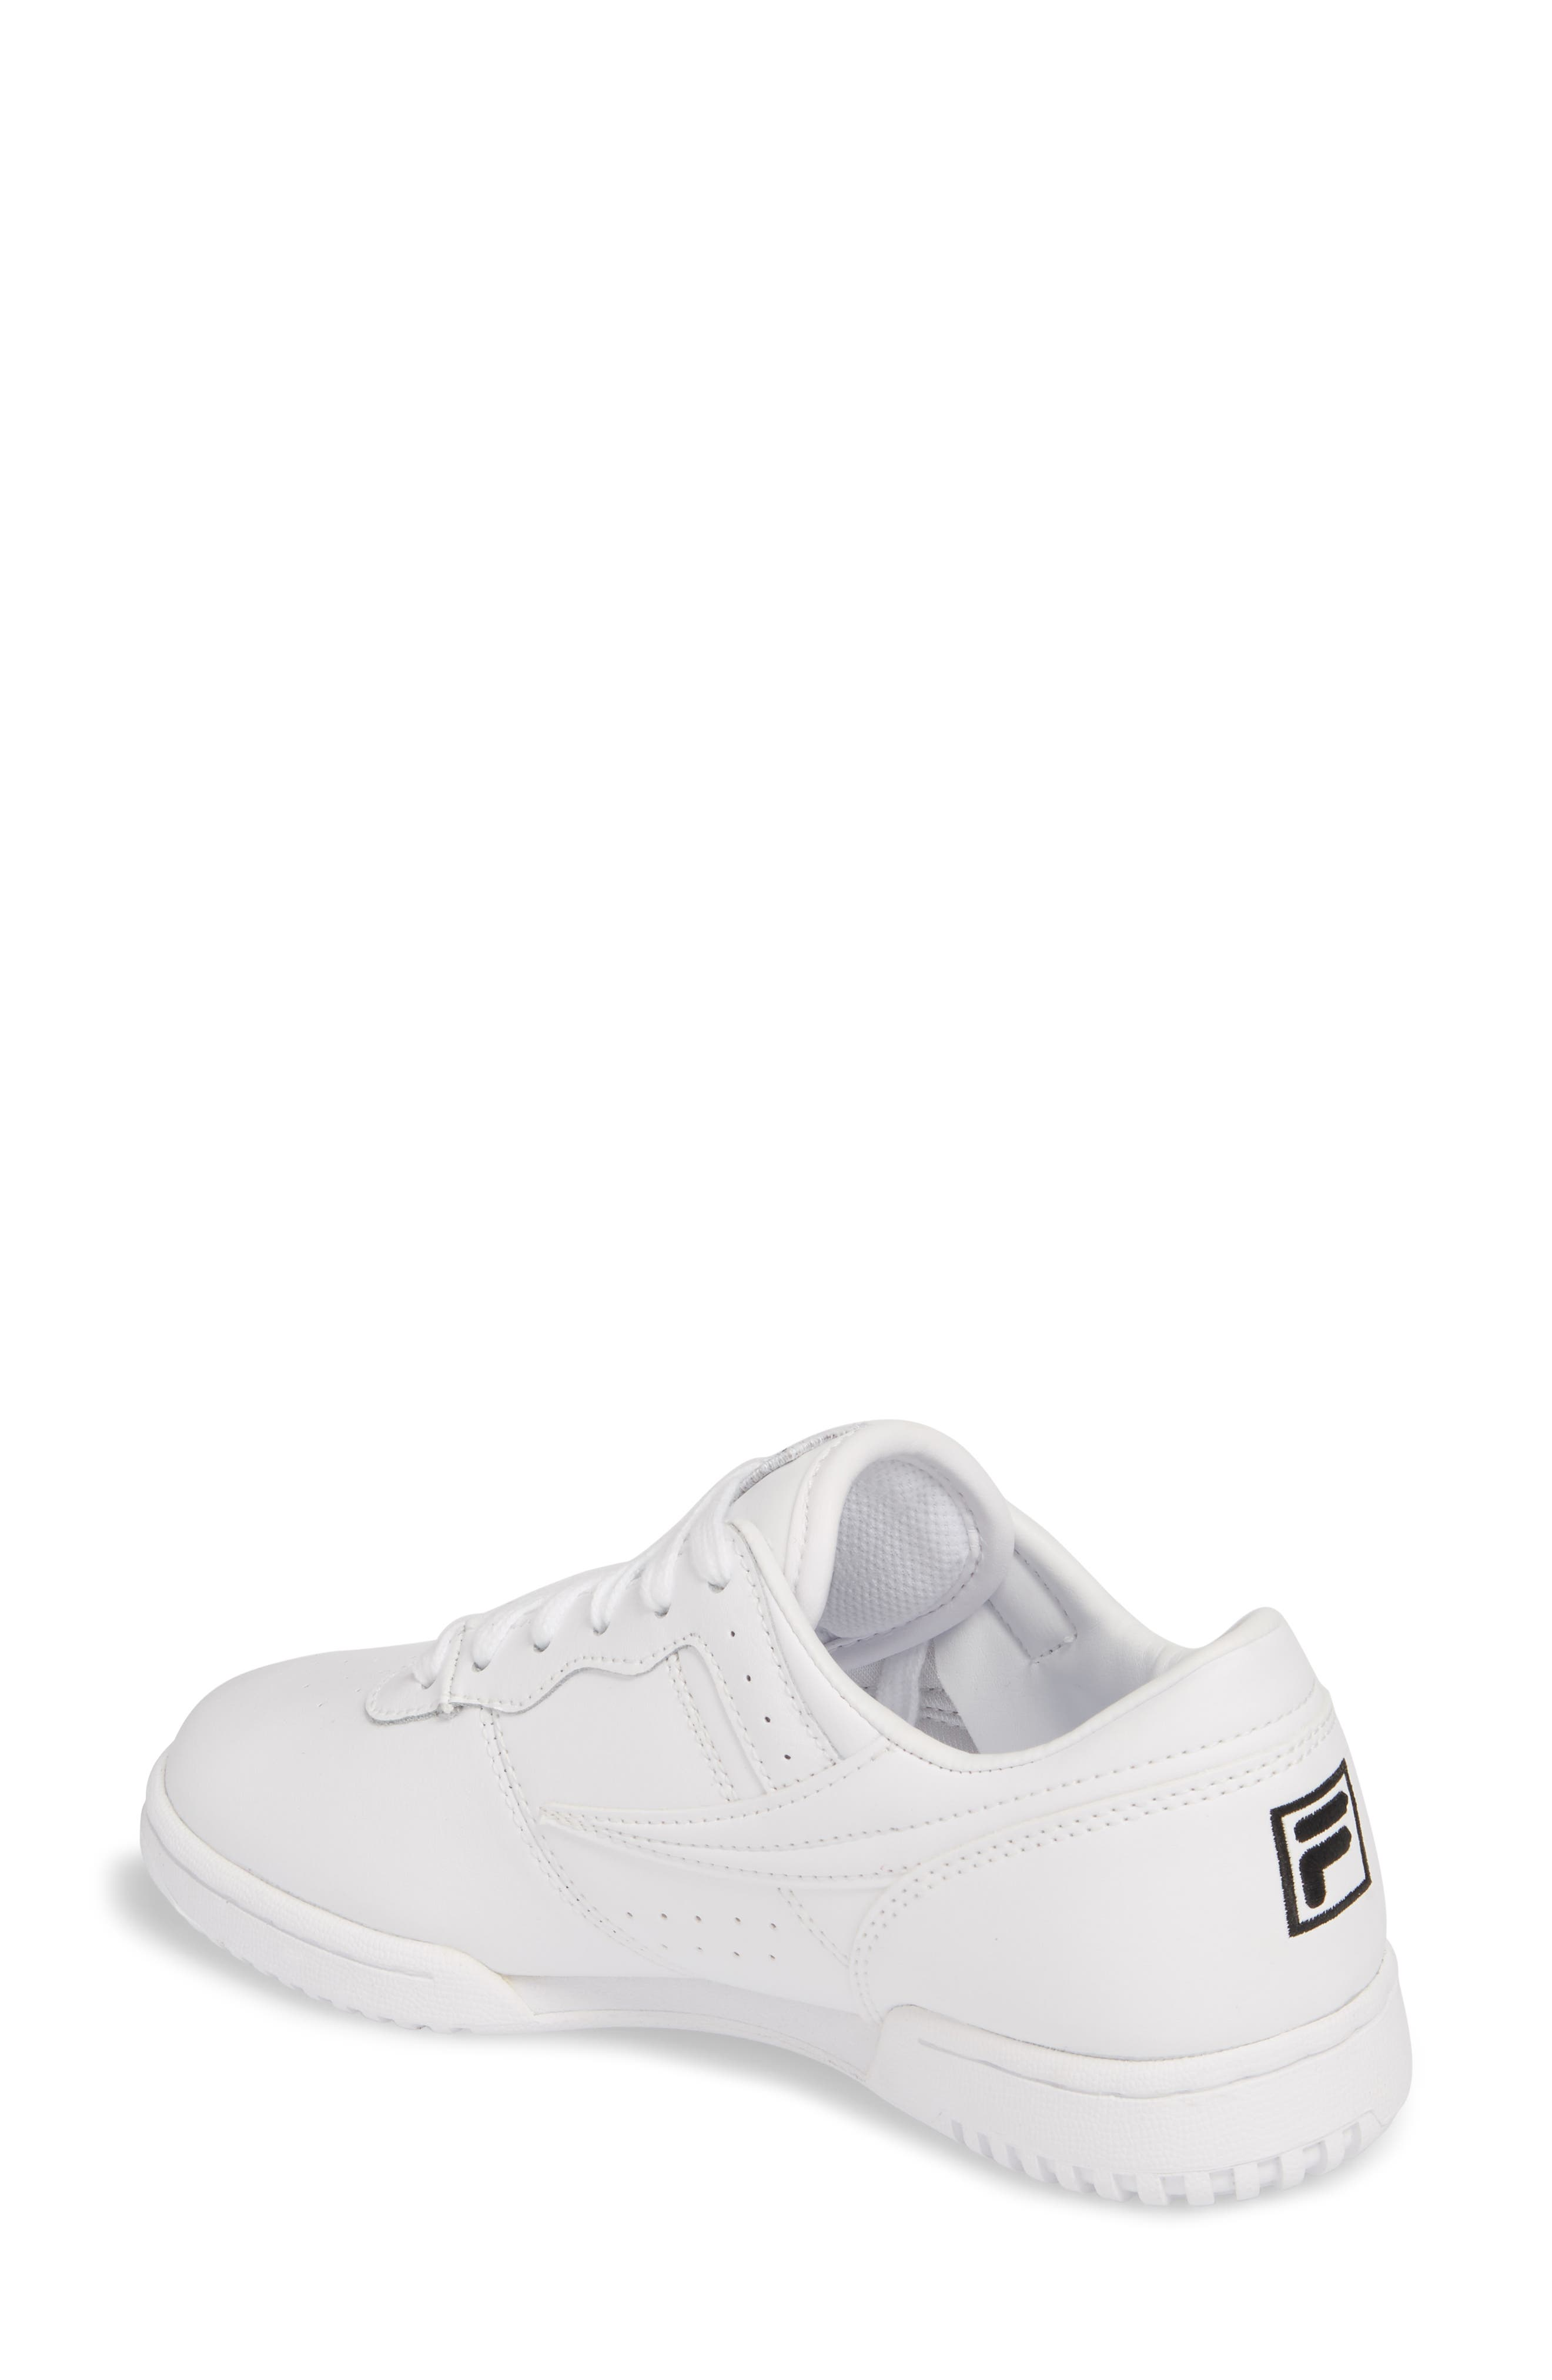 Alternate Image 2  - FILA Original Fitness Sneaker (Women)